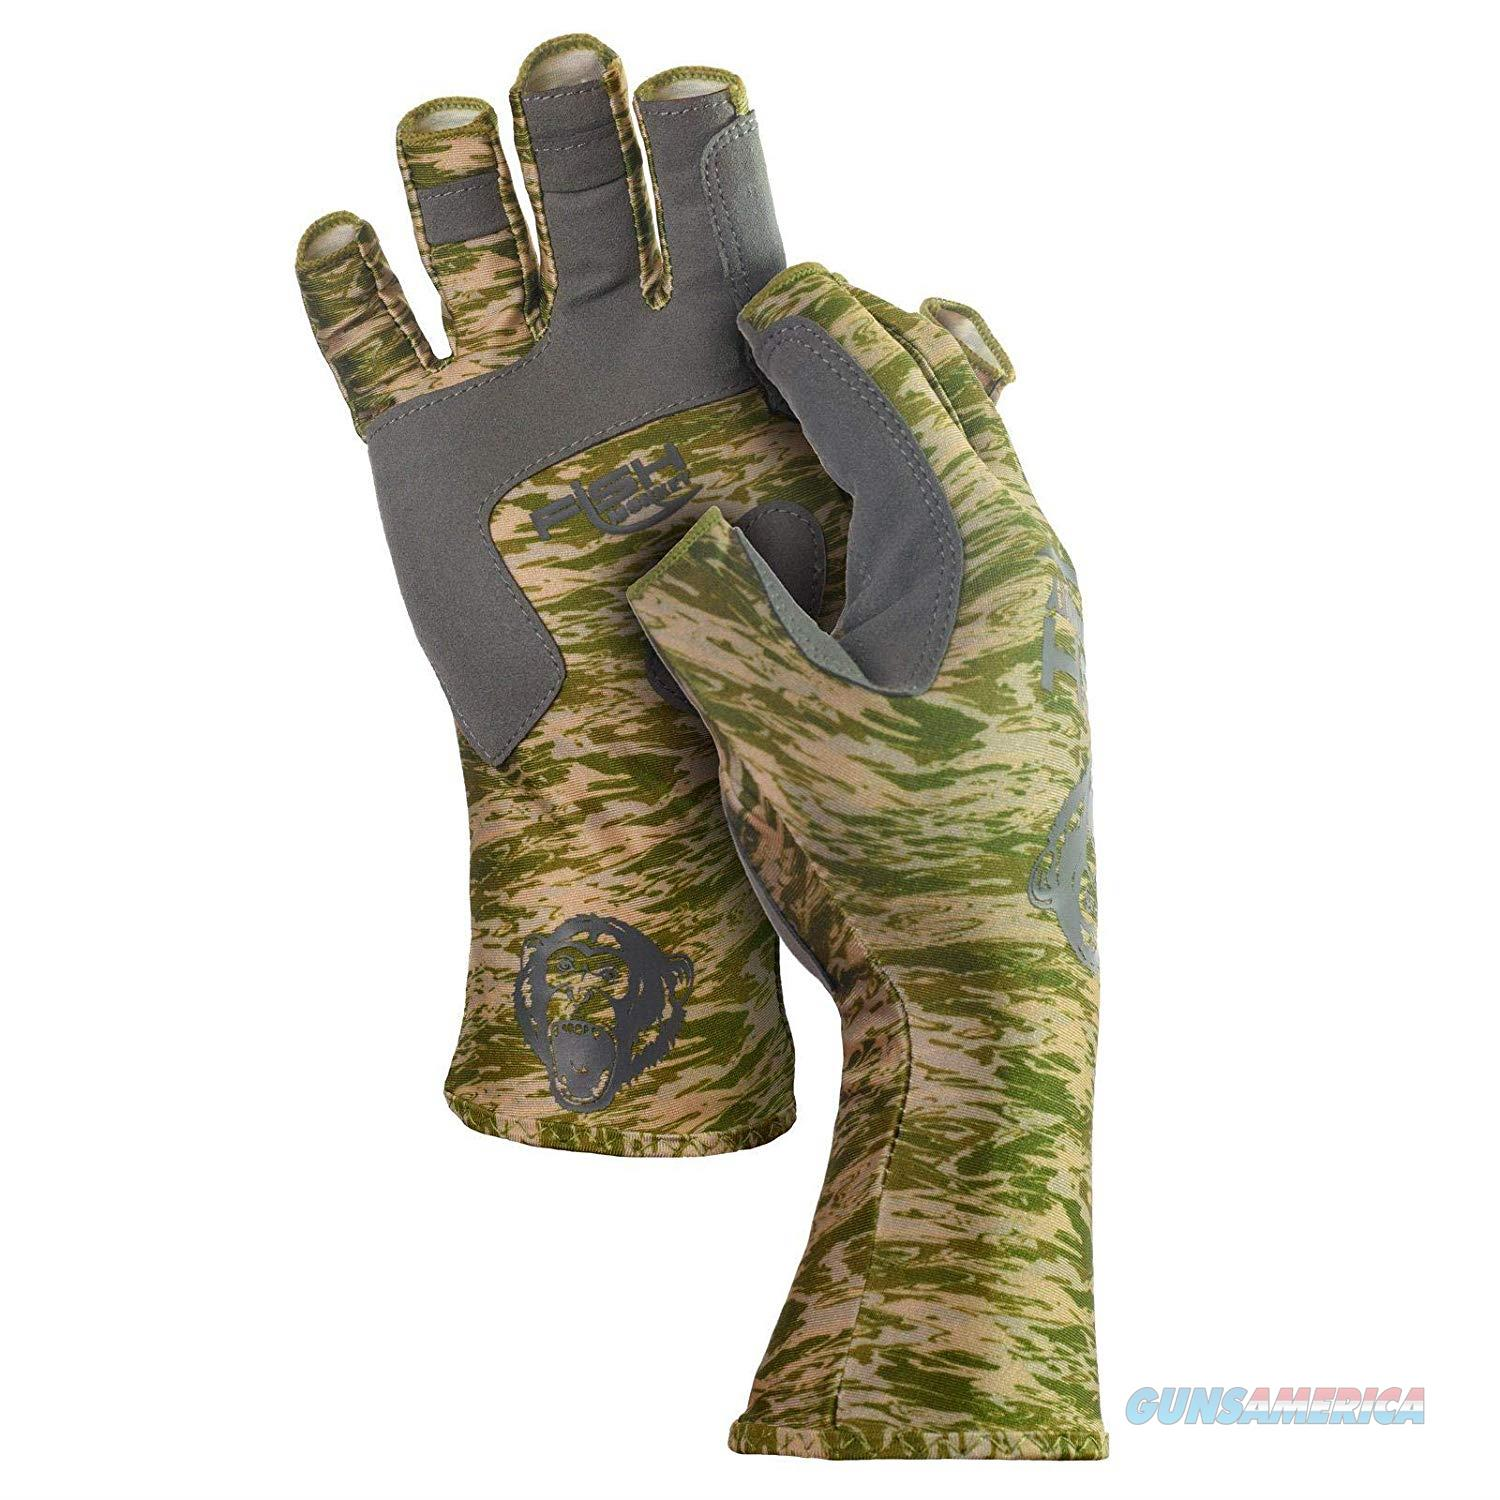 Fish Monkey Half Finger Guide Glove Green XL  Non-Guns > Hunting Clothing and Equipment > Clothing > Gloves